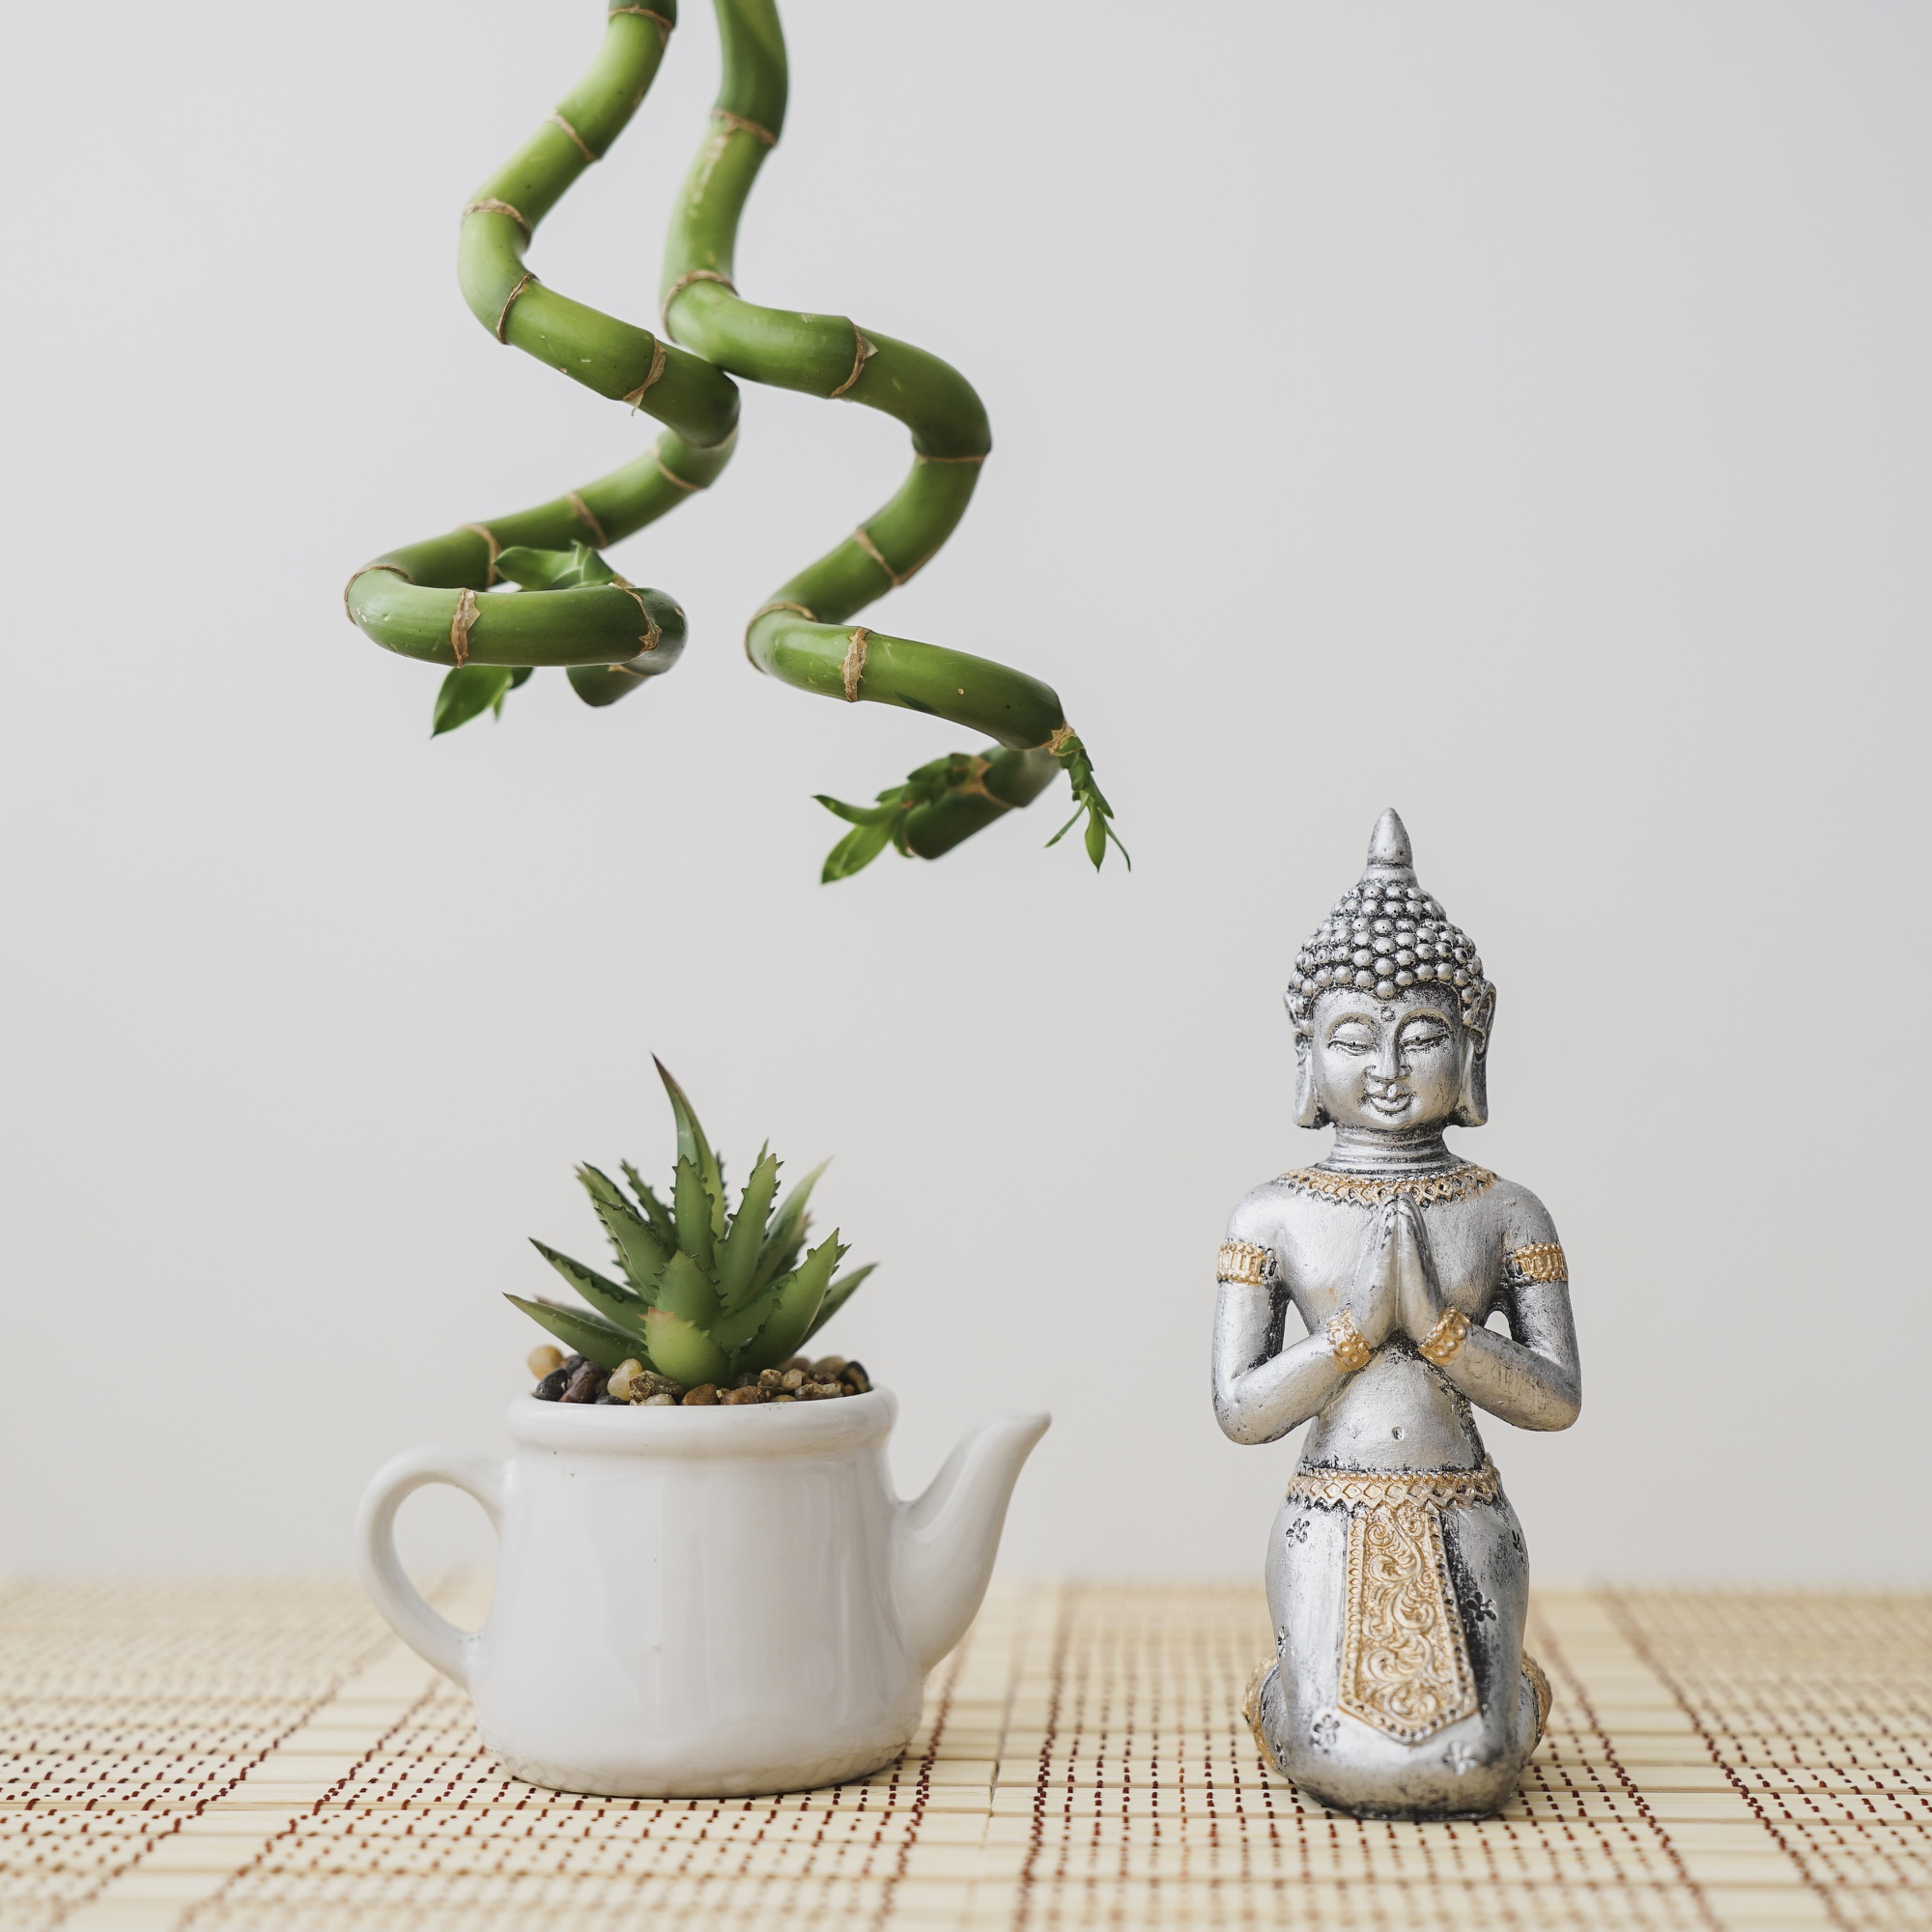 Composition of buddha and flowerpot with bamboo hanging